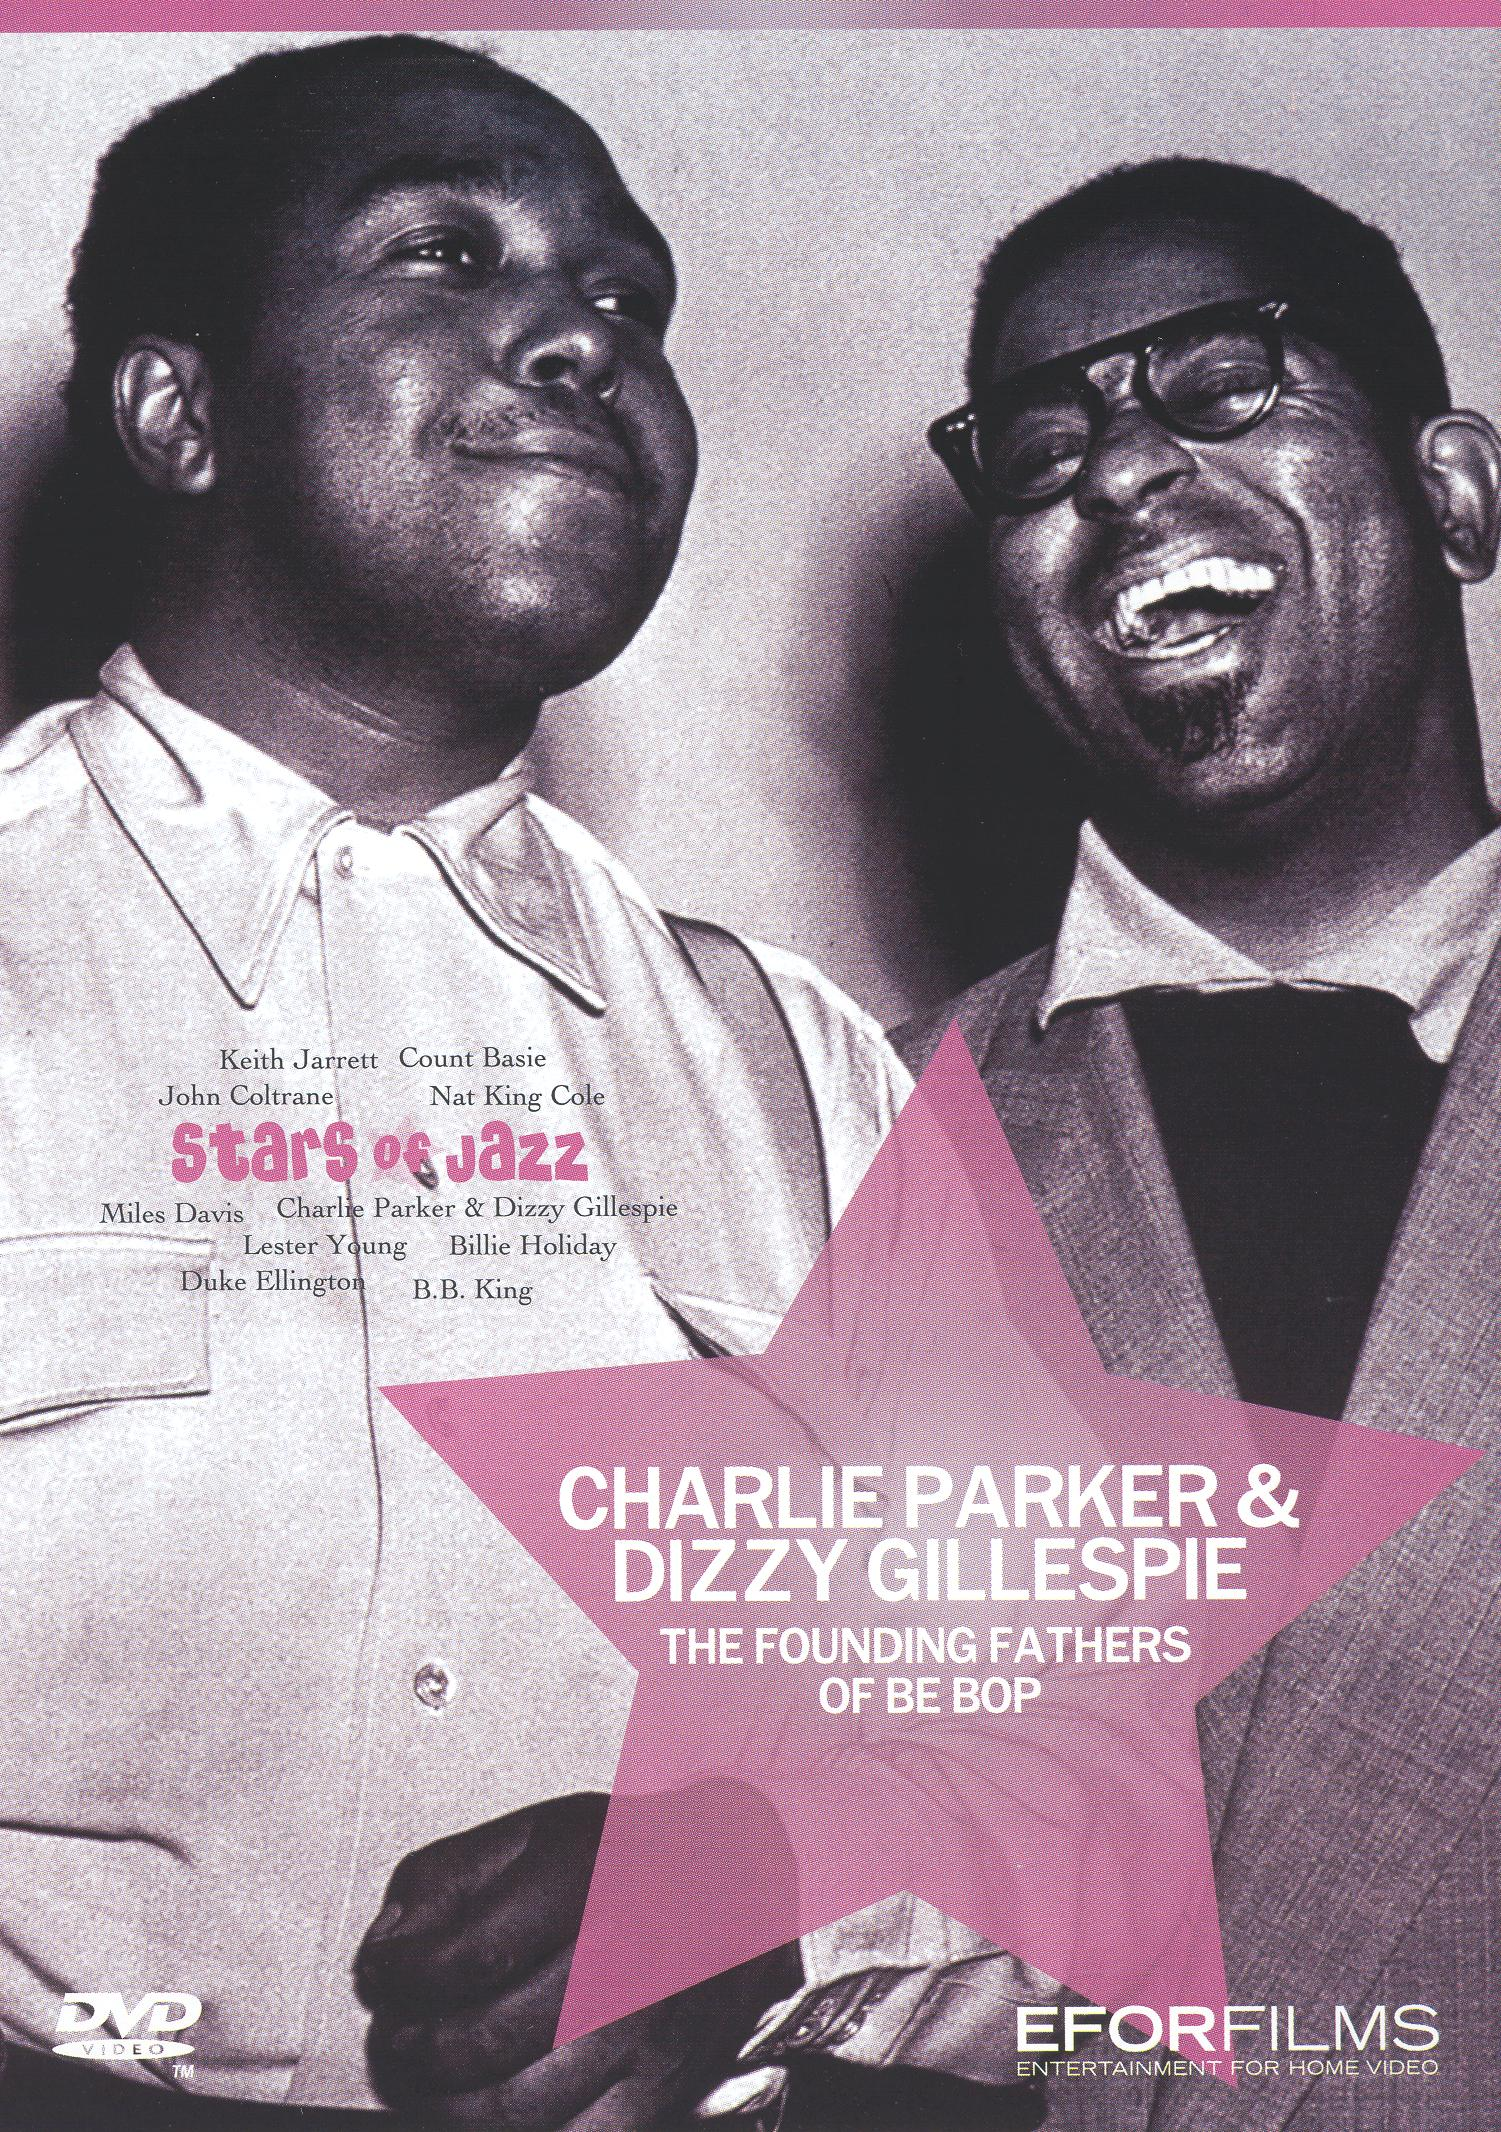 Charlie Parker/Dizzy Gillespie: Founding Fathers of Be Bop